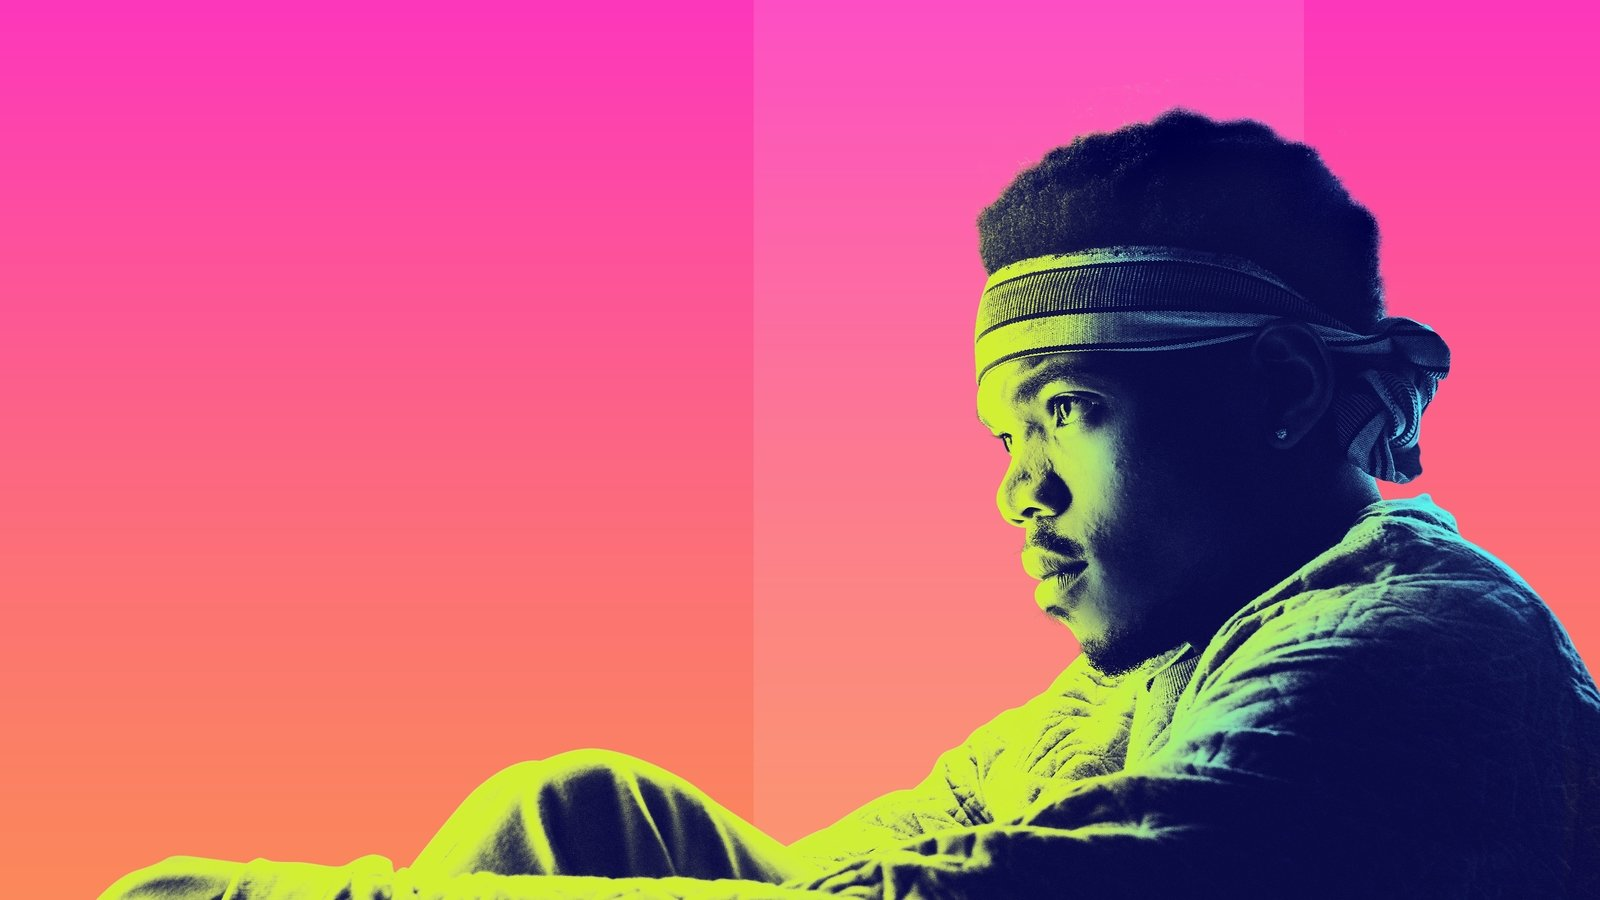 The coloring book chance the rapper download - Chance The Rapper Tickets Apple Music Festival 10 30th Sep 2016 Roundhouse London Dice